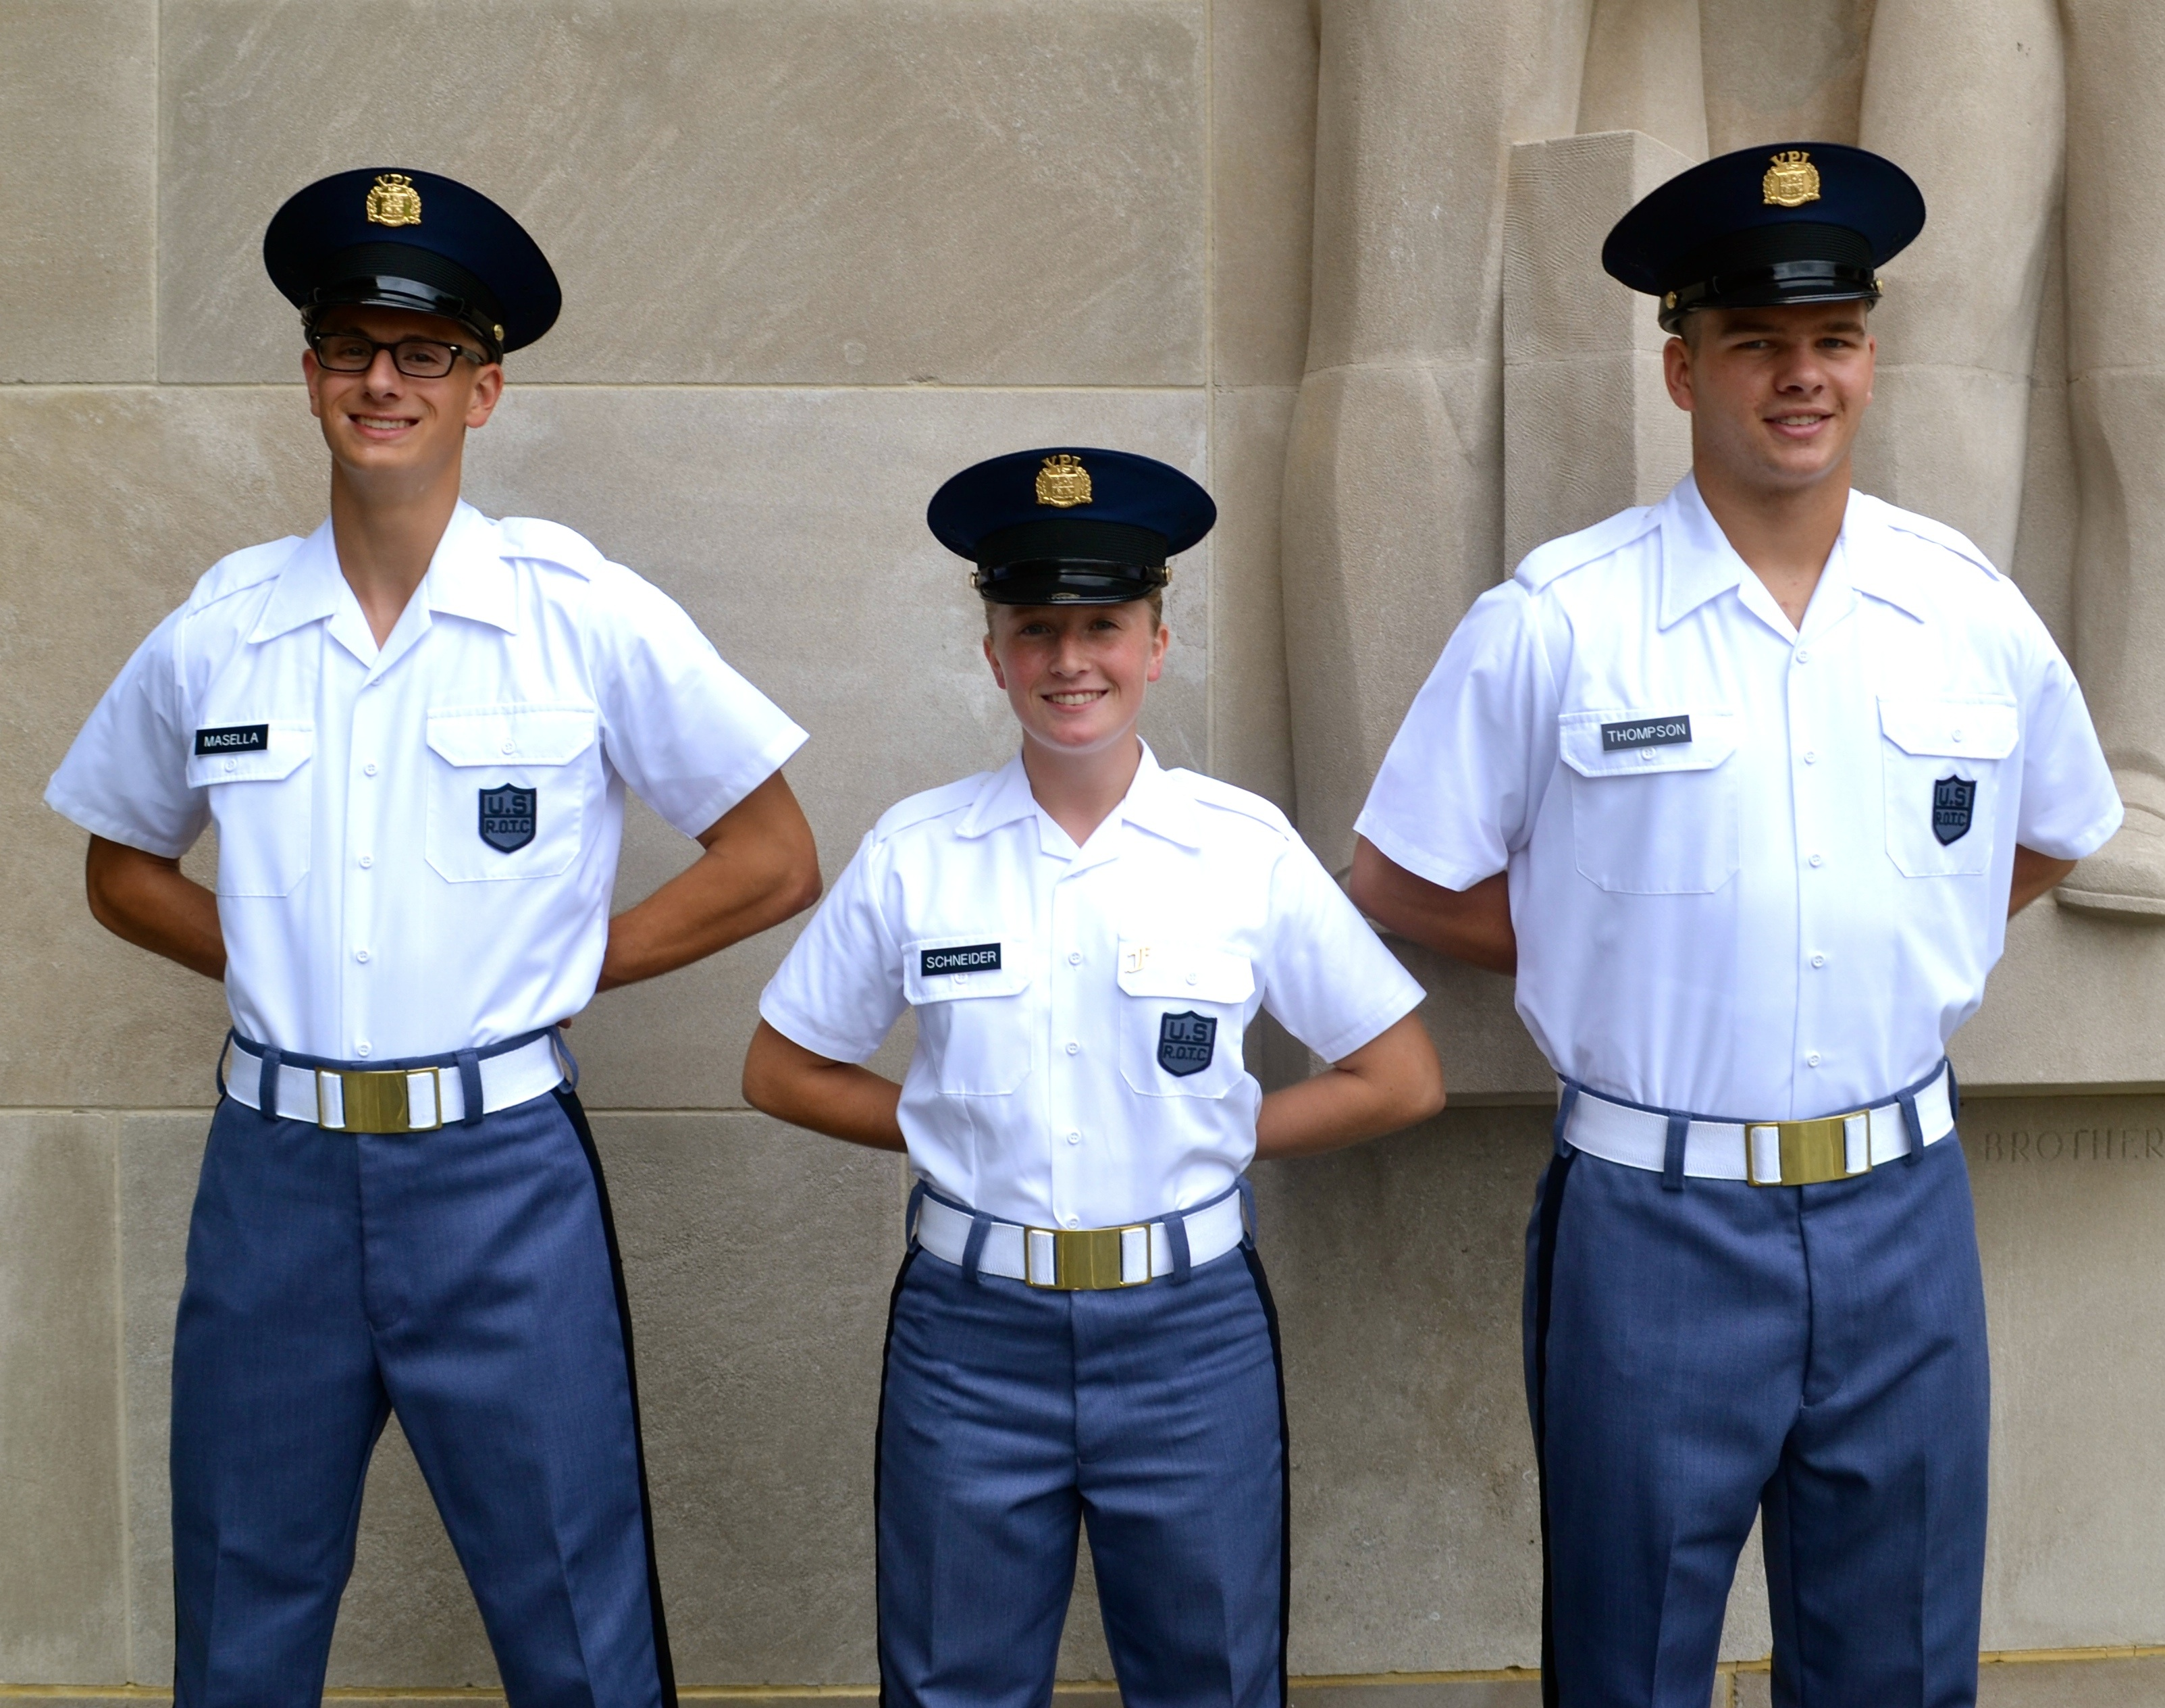 Standing in front of the Pylongs from left to right are Cadets Nicholas Masella, Robyn Schneider, and Matthew Thompson.